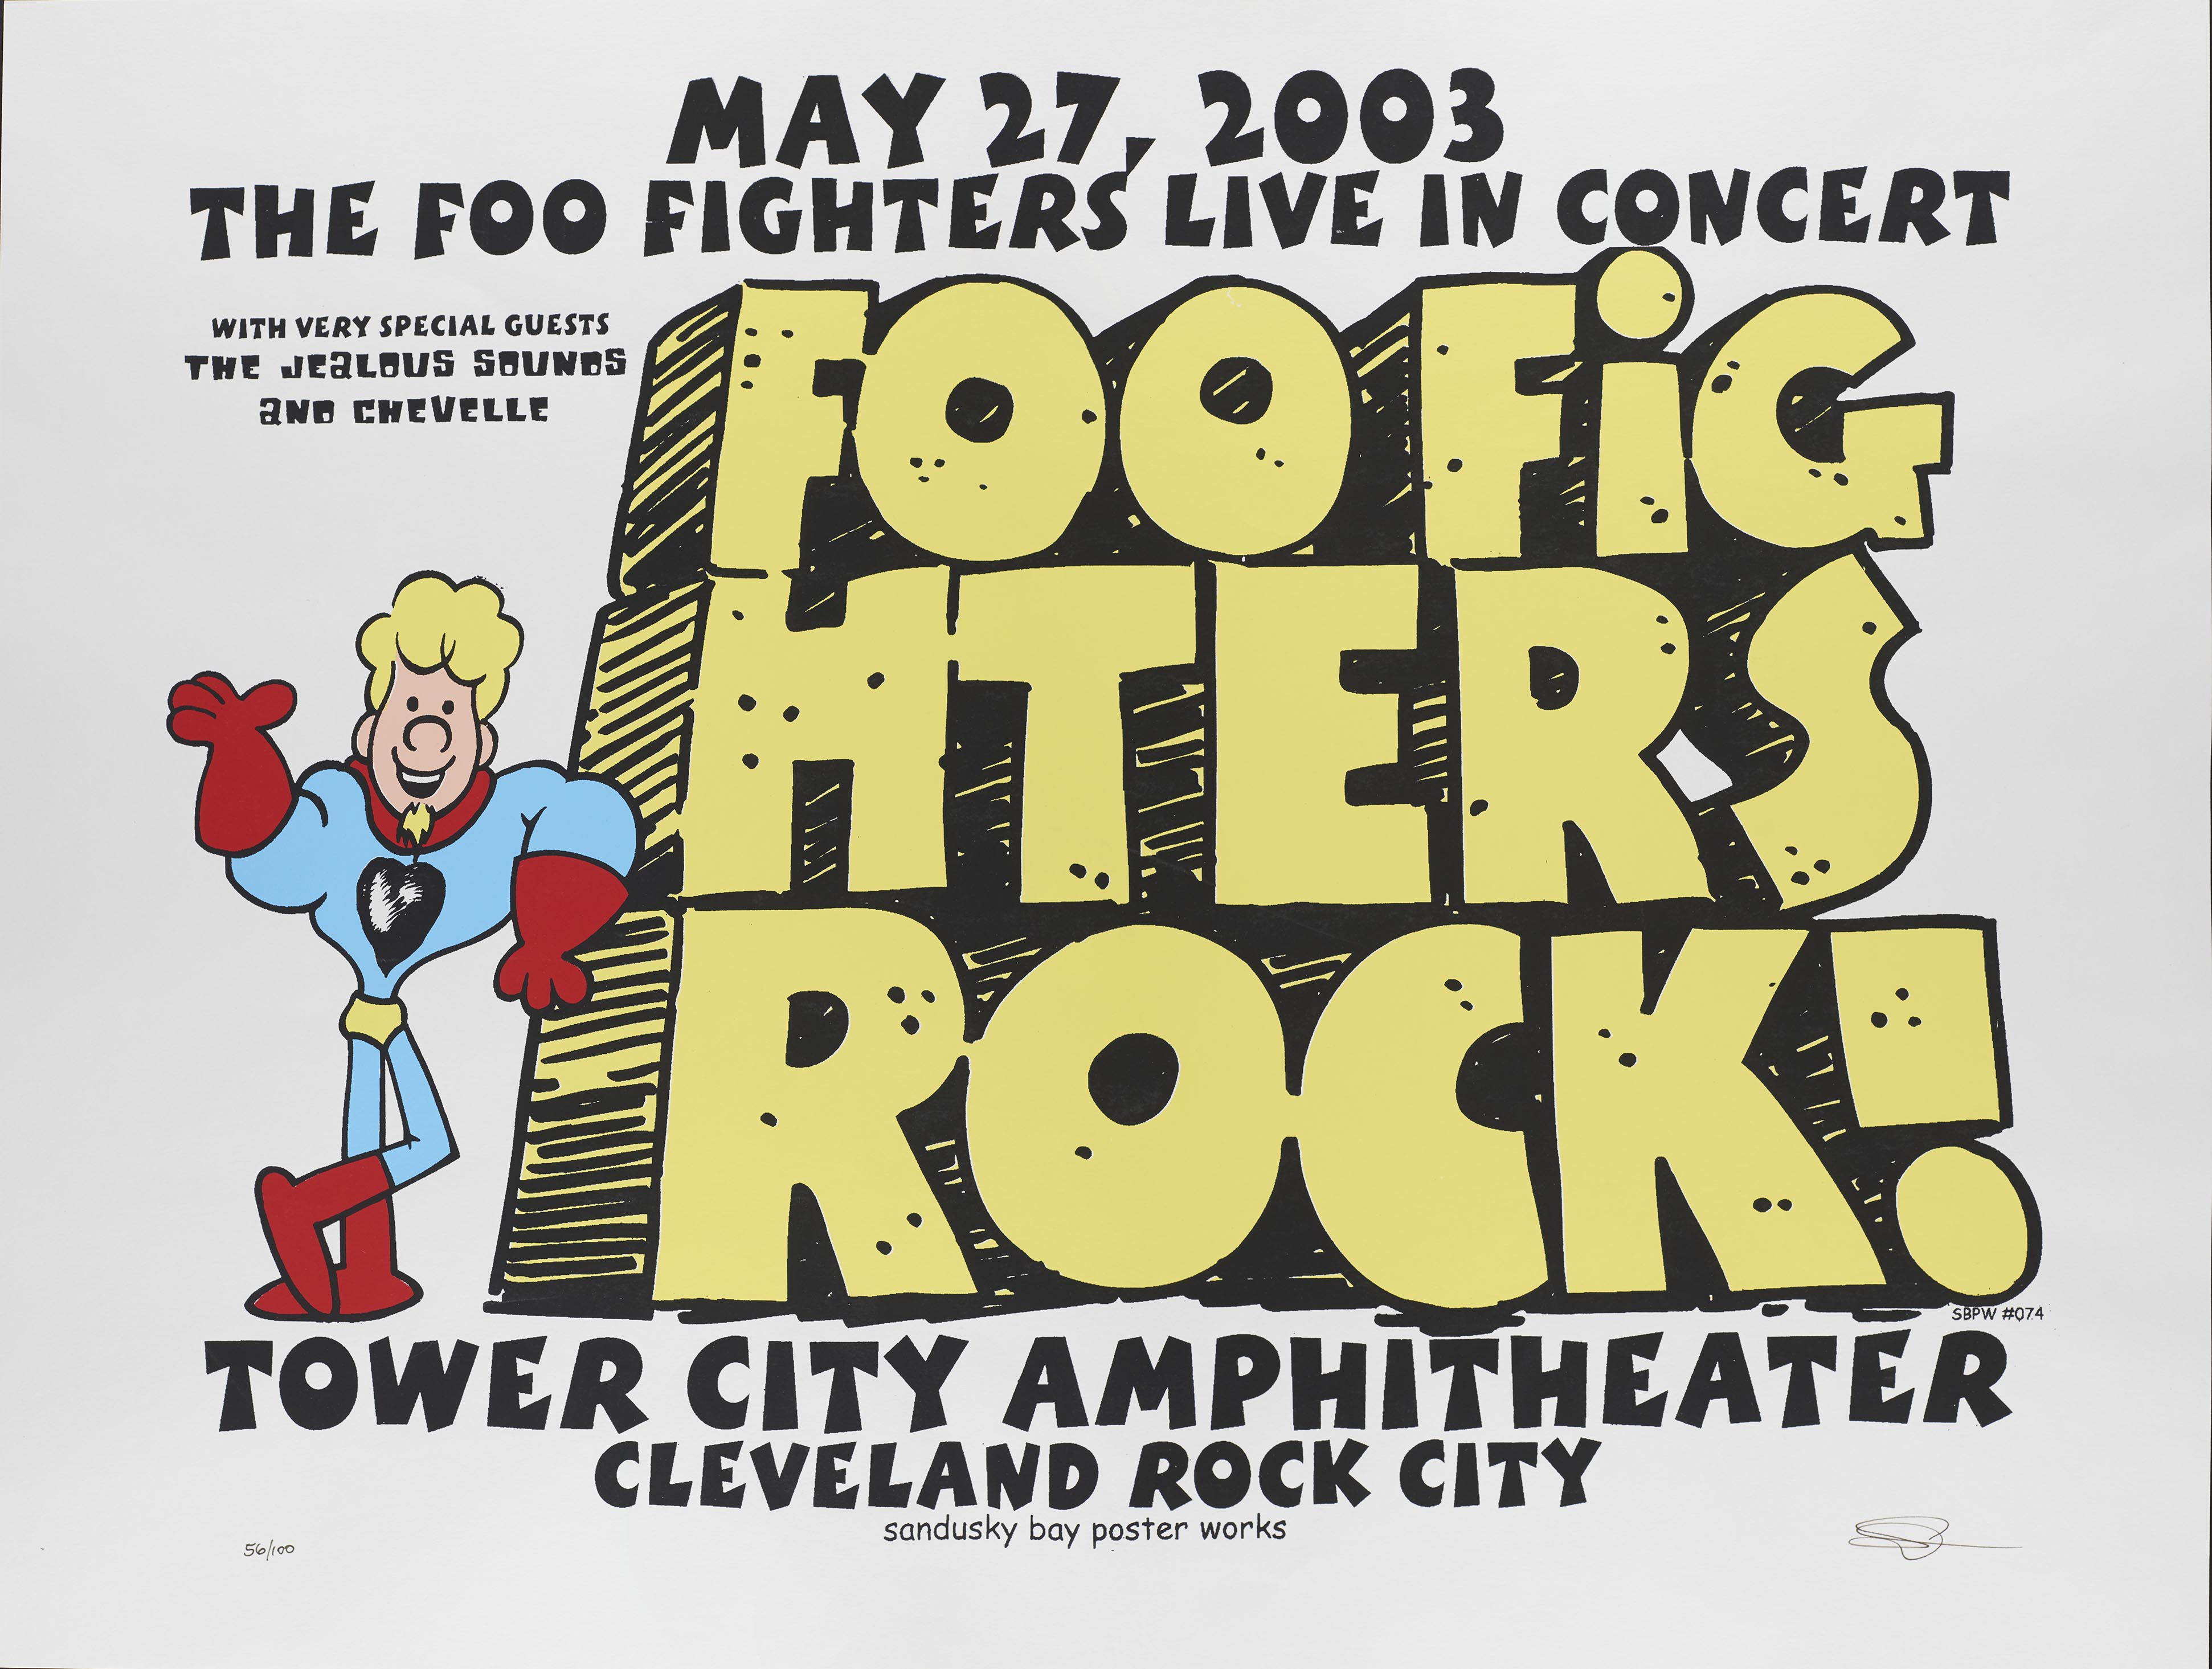 Foo Fighters poster, 2003